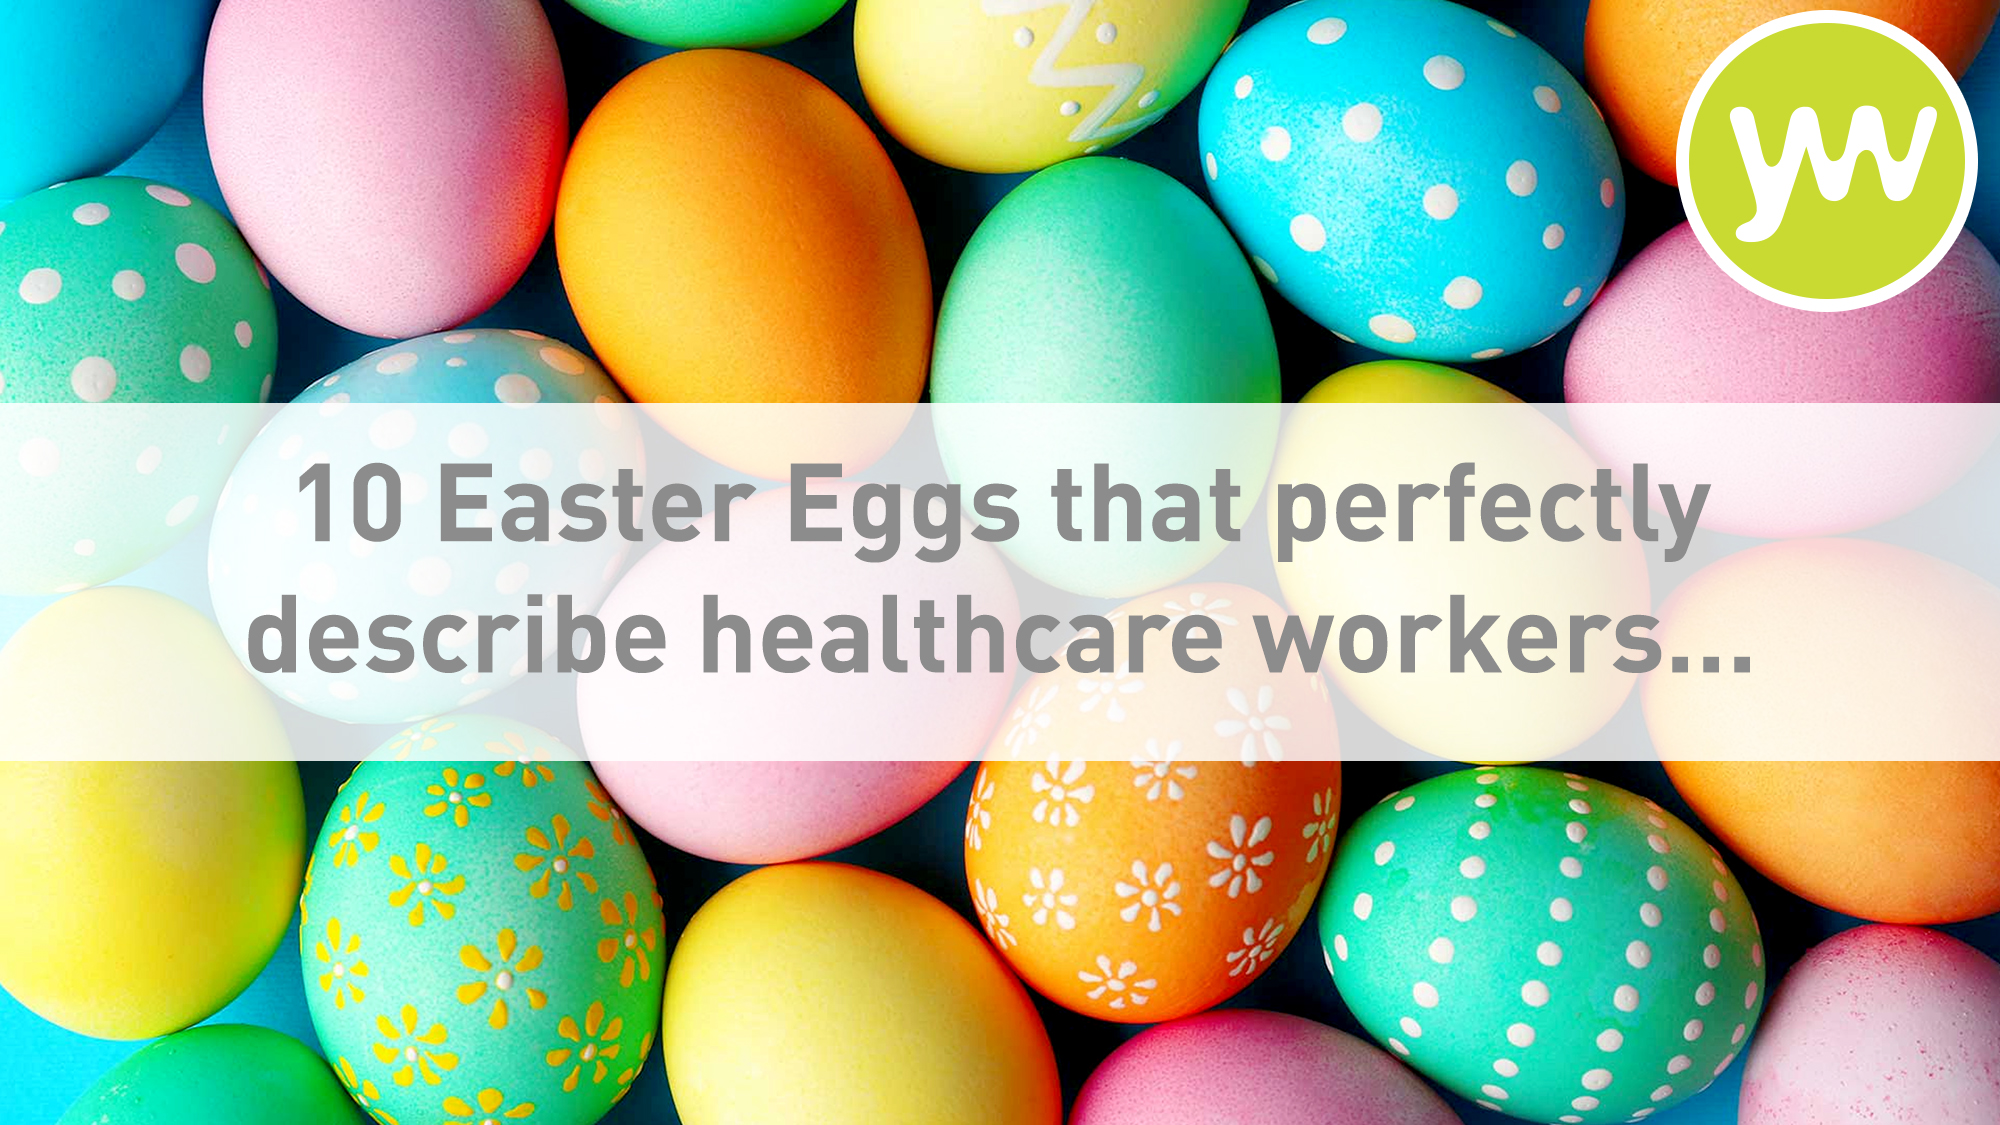 10 Easter eggs that perfectly describe healthcare workers